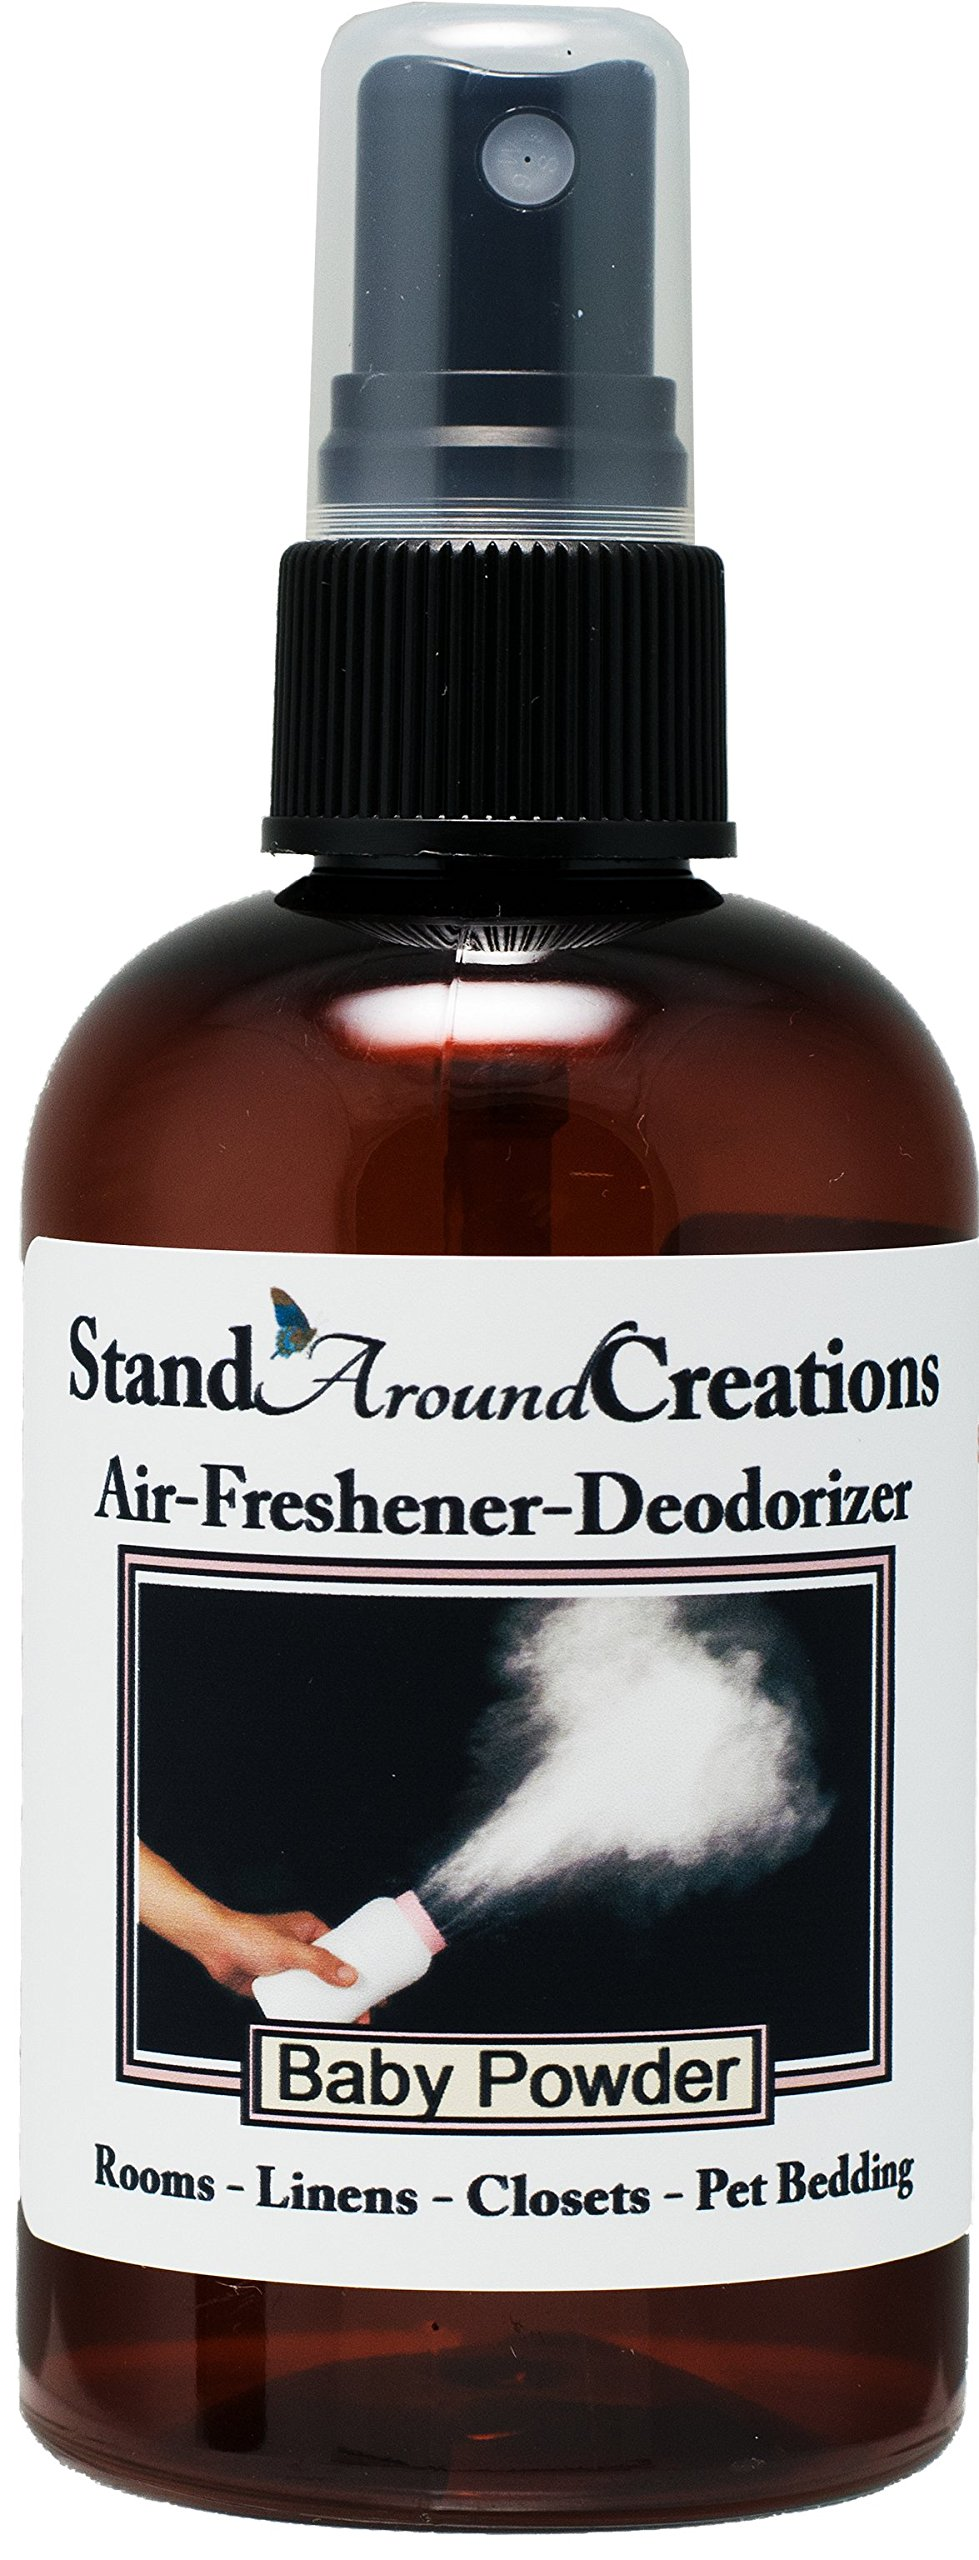 Concentrated Spray For Room / Linen / Room Deodorizer / Air Freshener - 4 fl oz - Scent - Baby Powder: A true-to-name fragrance that contains white cedar, ylang ylang, cypress, and musk. This fragrance is infused with natural essential oils, including Ced